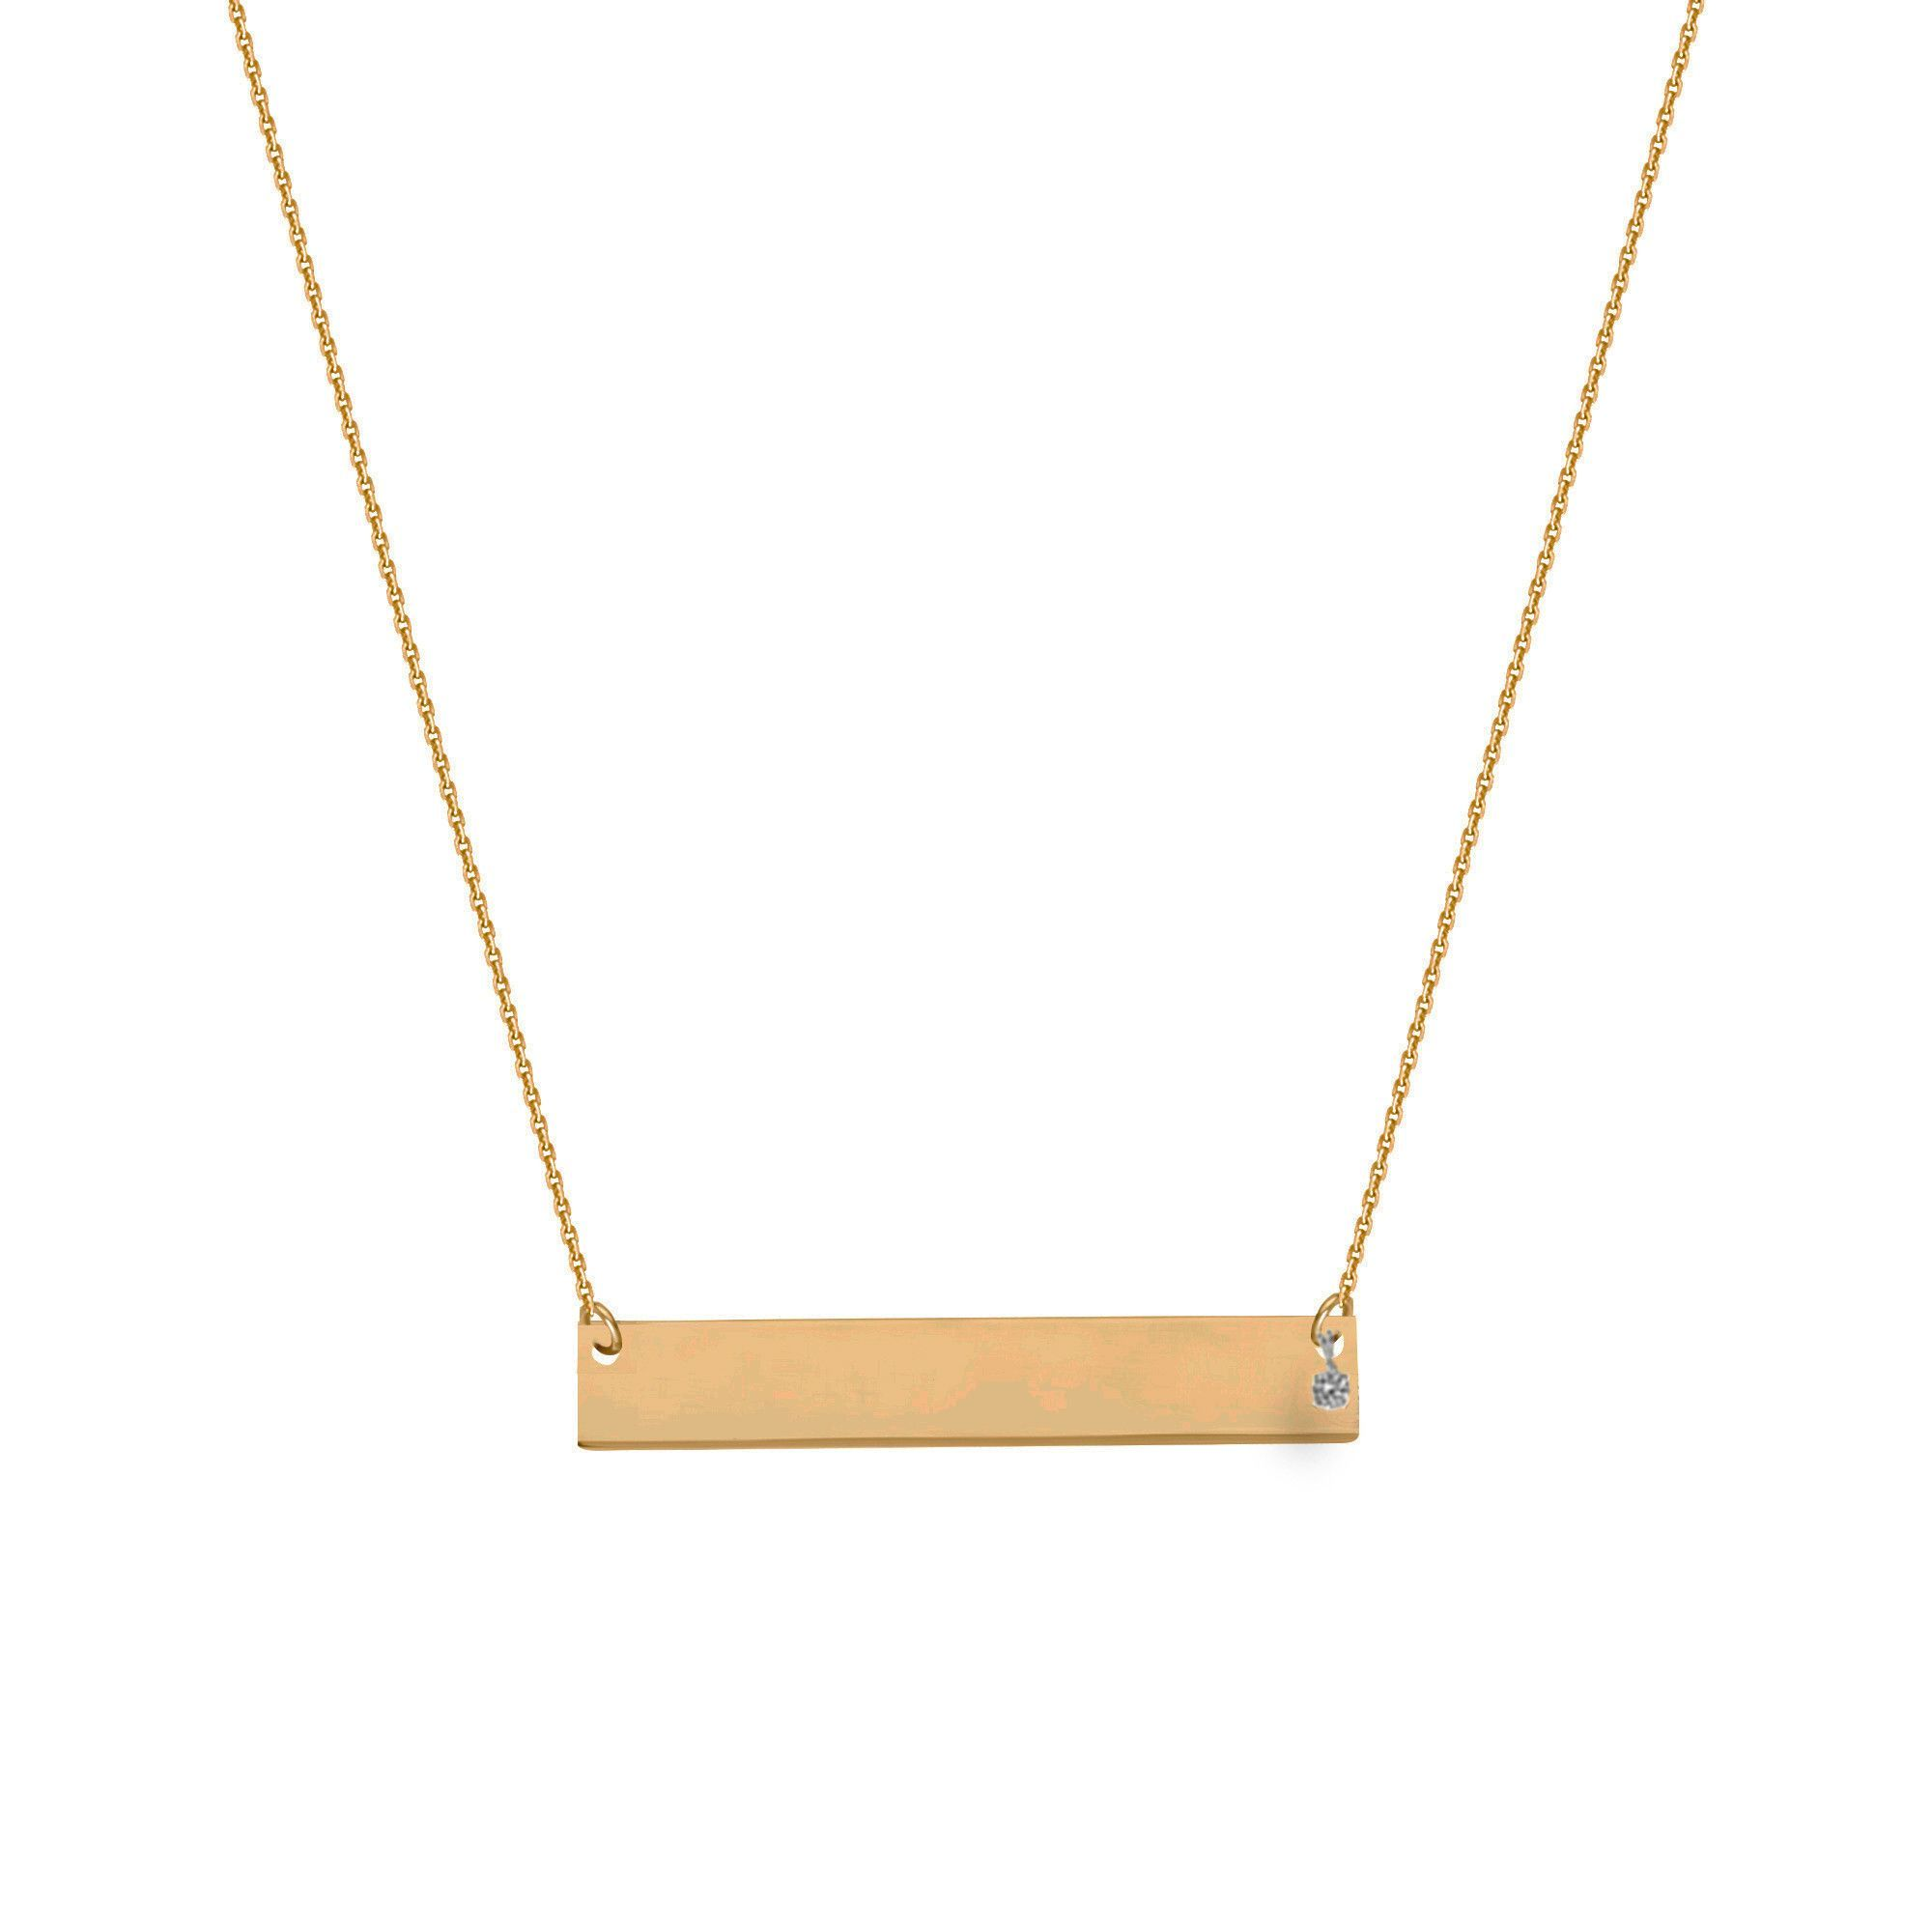 credit suisse gold necklace pendant in yellow estate fine bar